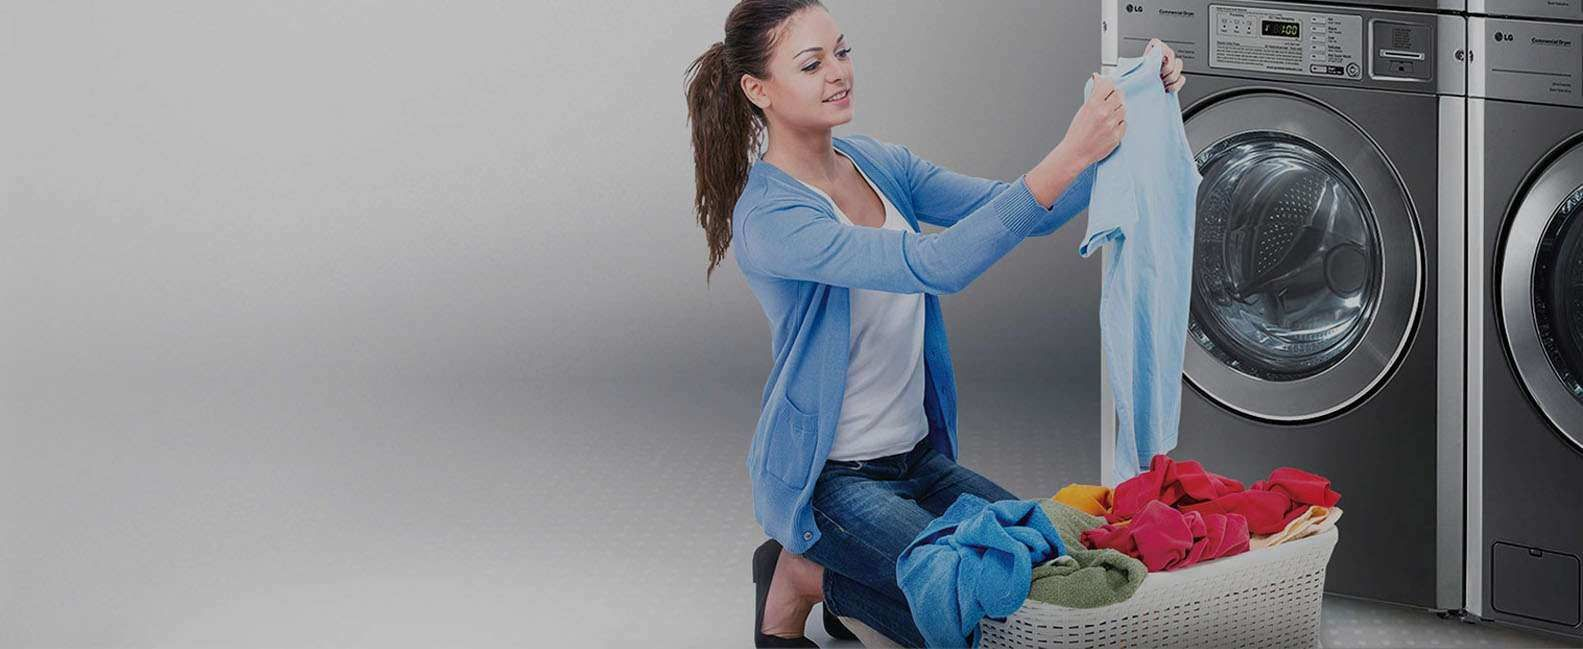 Best laundry and dry cleaning service in uk london just